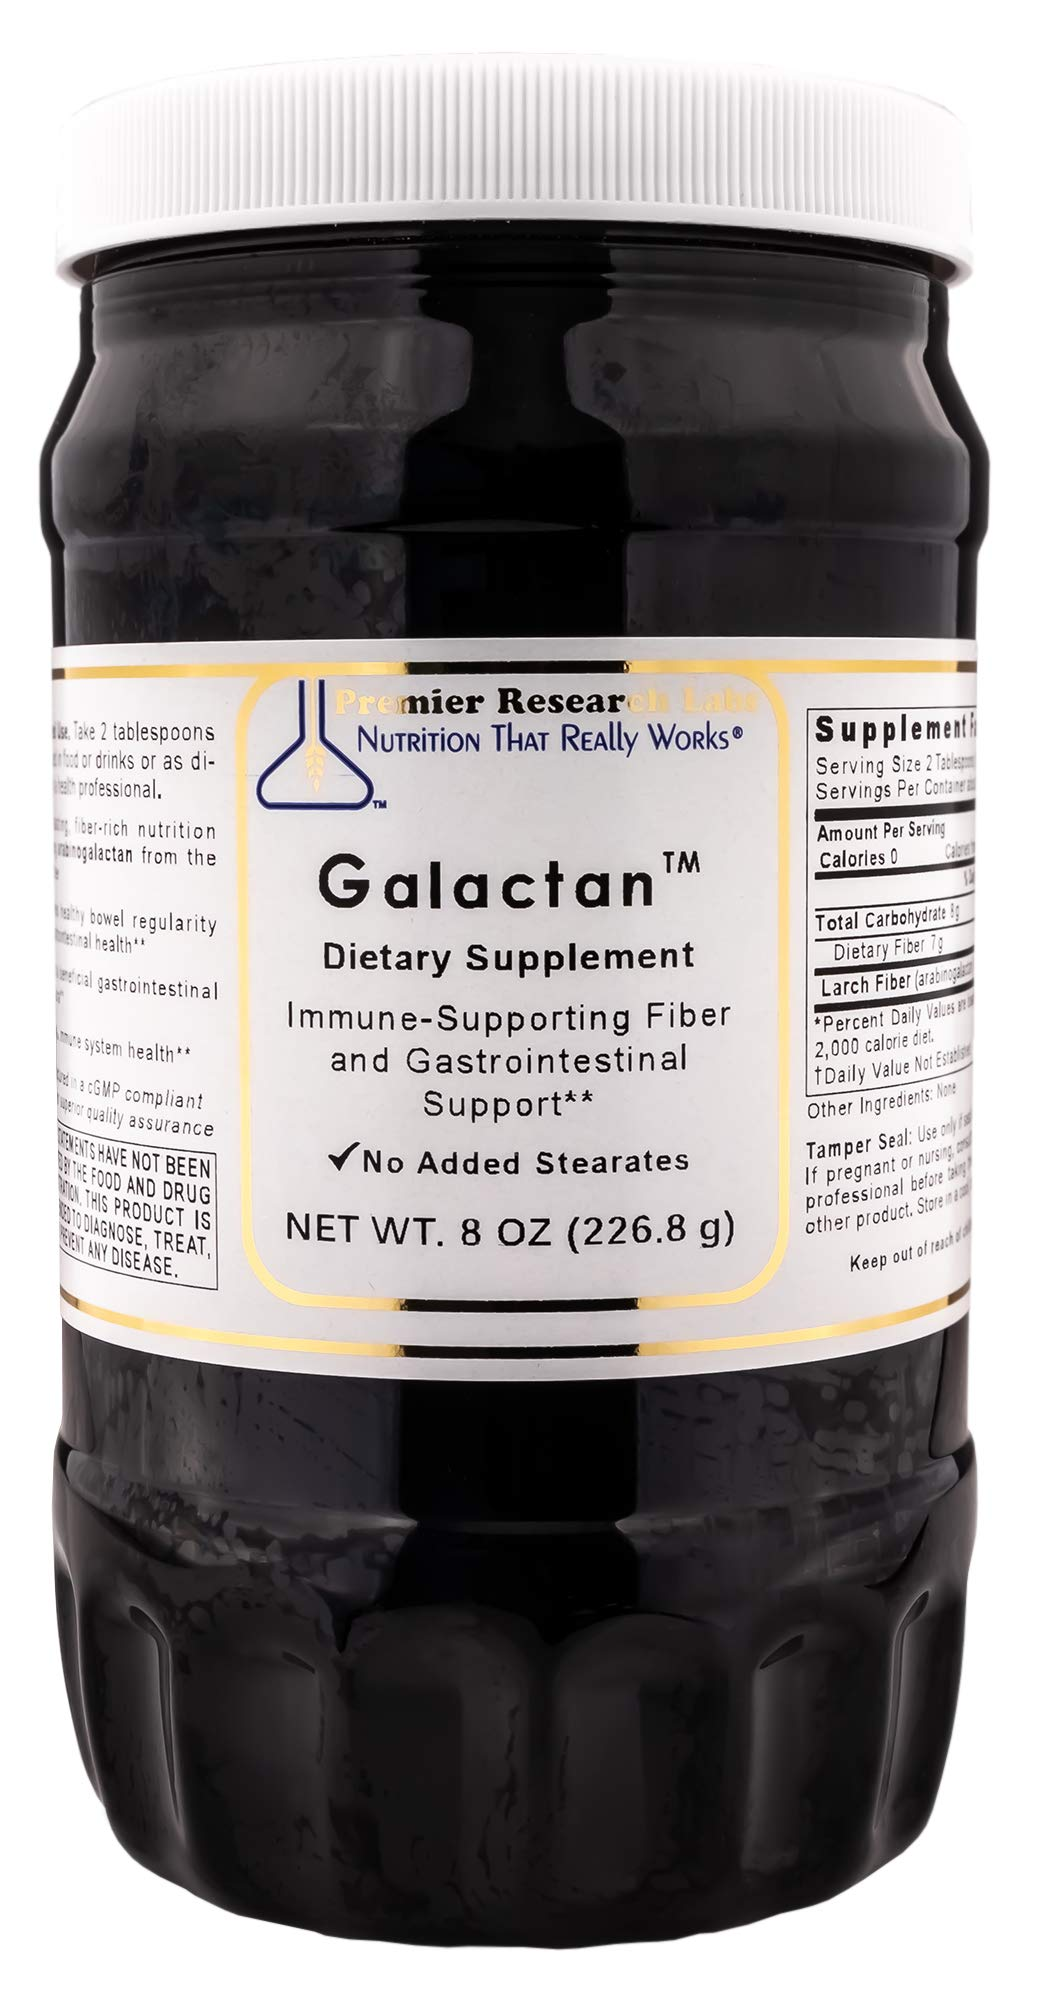 PREMIER RESEARCH LABS Galactan - Supports Immune System and Gastrointestinal Health (8 Ounces, 228 Gram) by Premier Research Labs